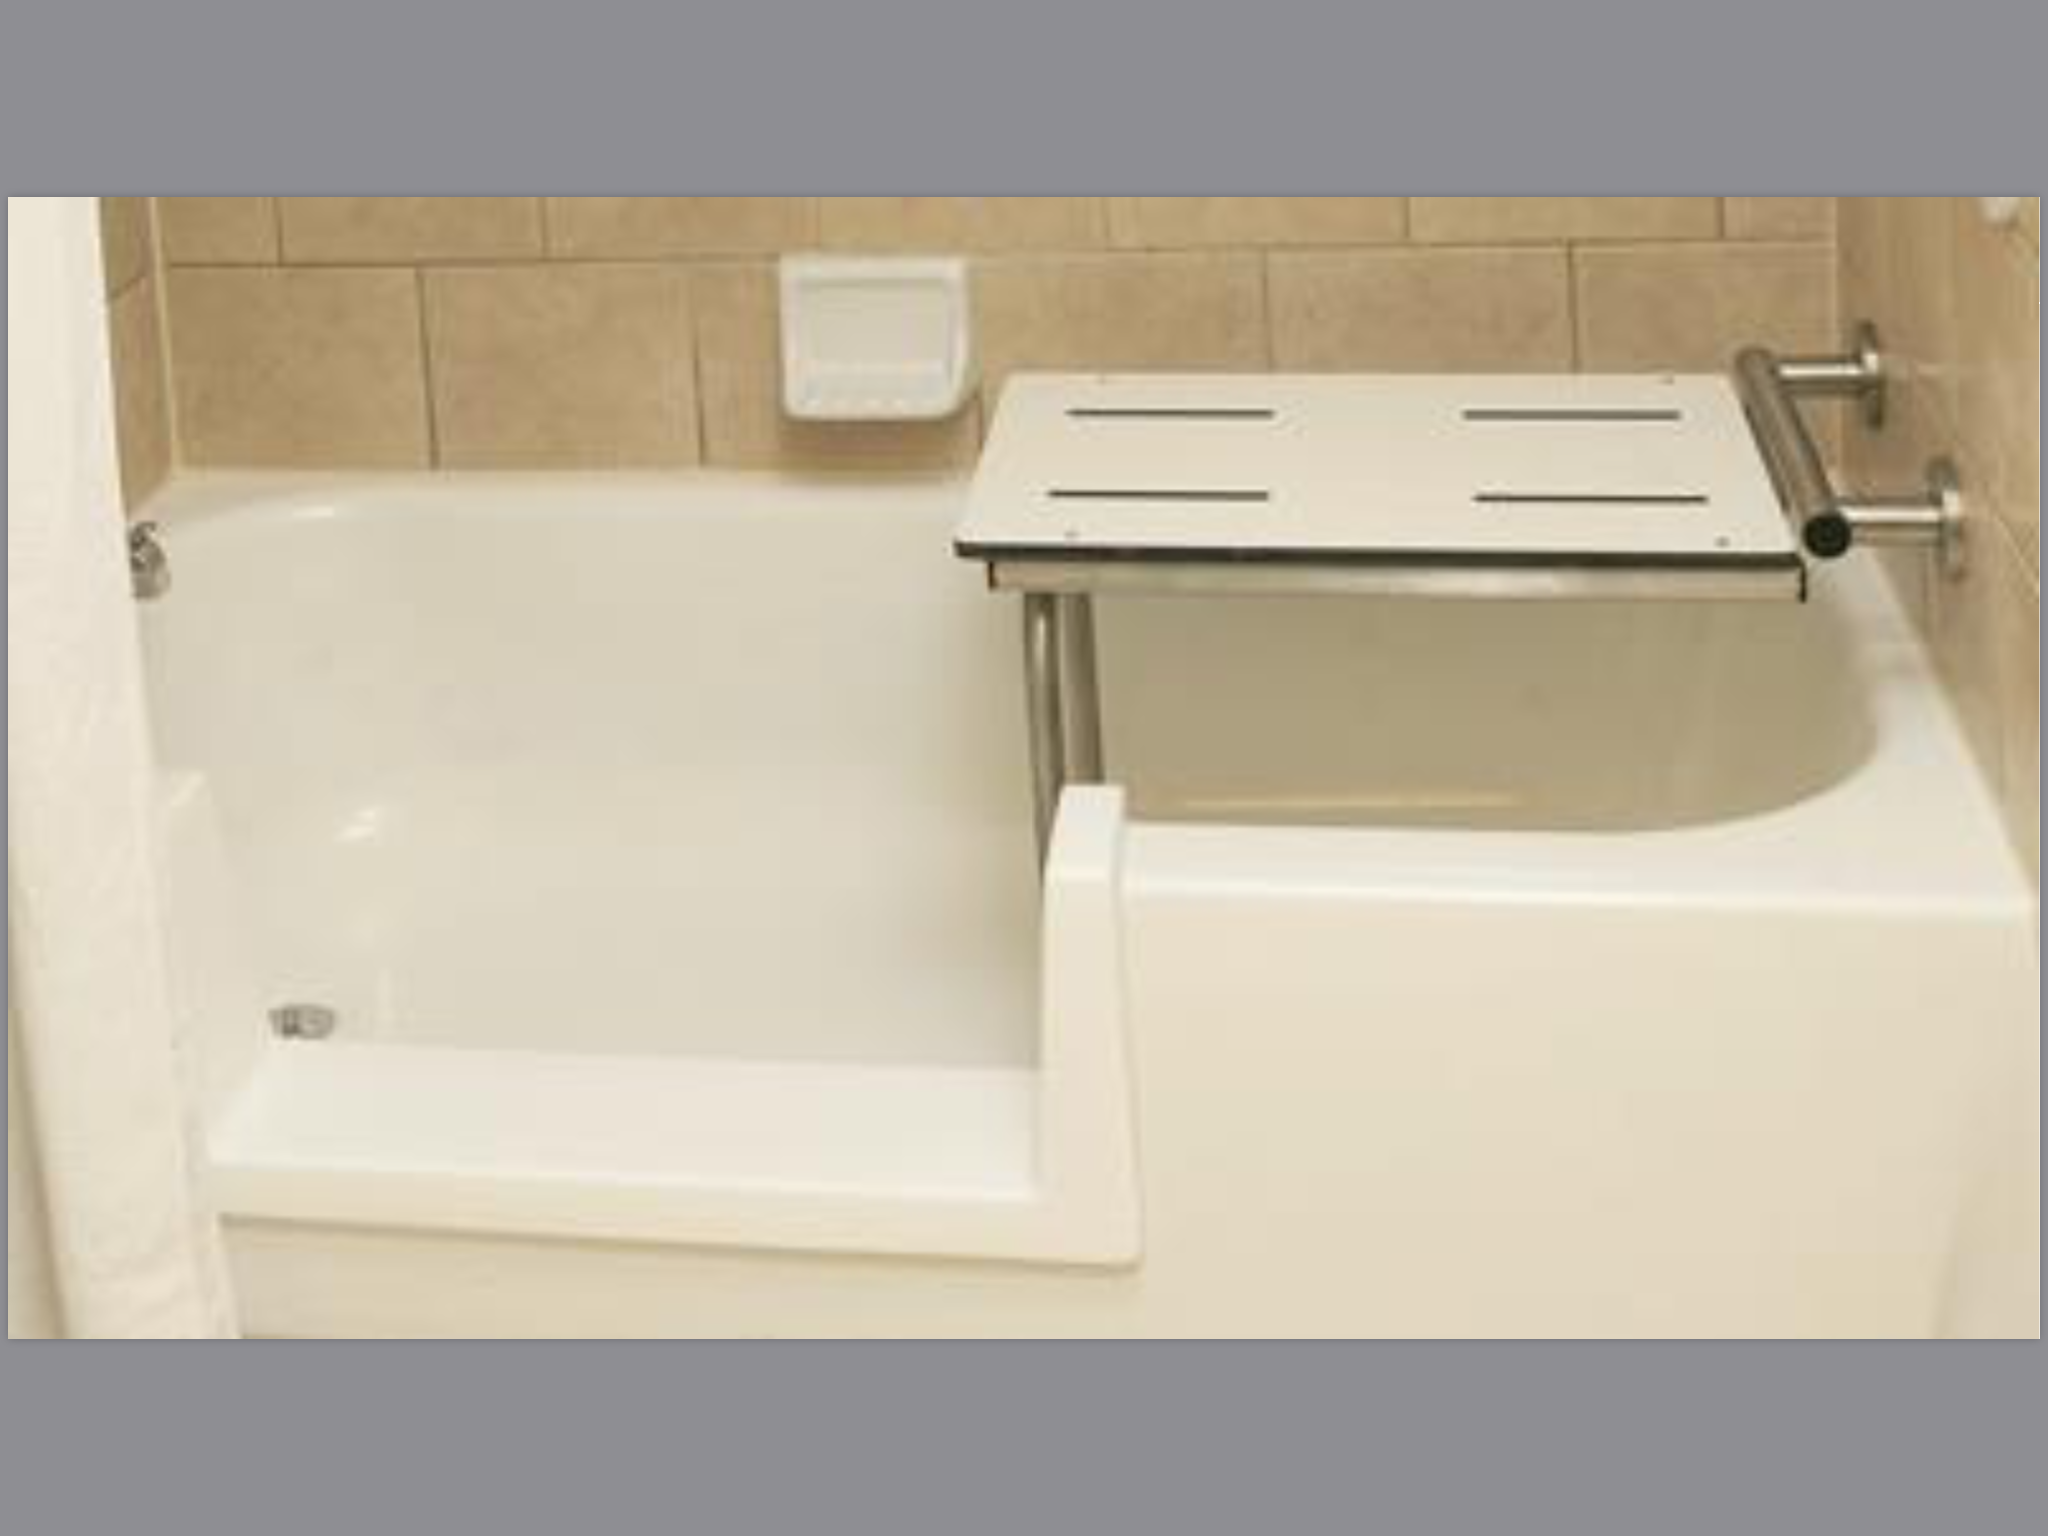 Walk In Bathtubs Customized To Your Needs 1295 00